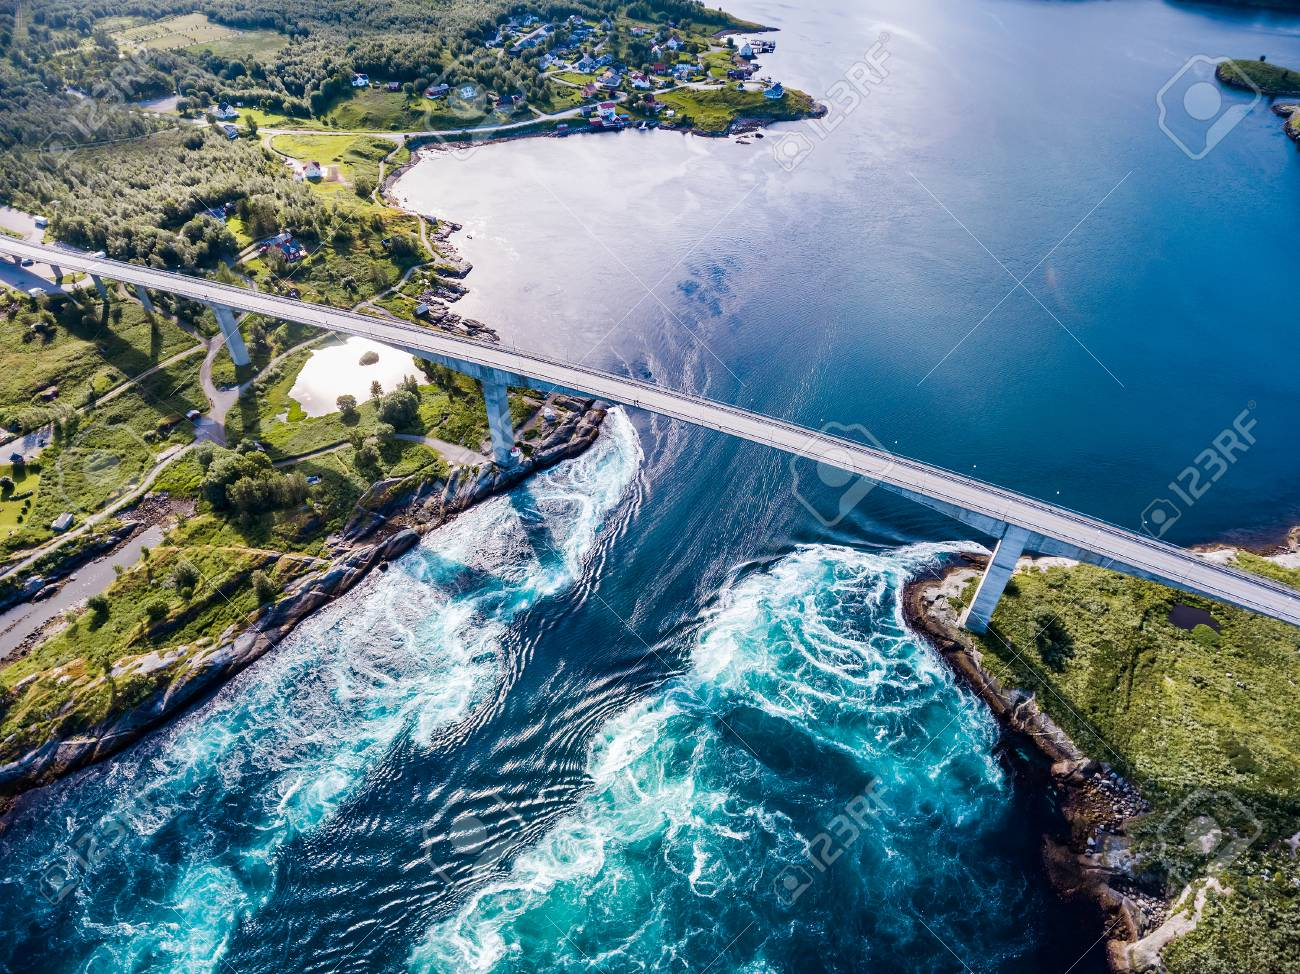 Stock Photo Whirlpools Of The Maelstrom Of Saltstraumen Nordland Norway Aerial View Beautiful Nature Saltstraumen Is A Small Strait With One Of The